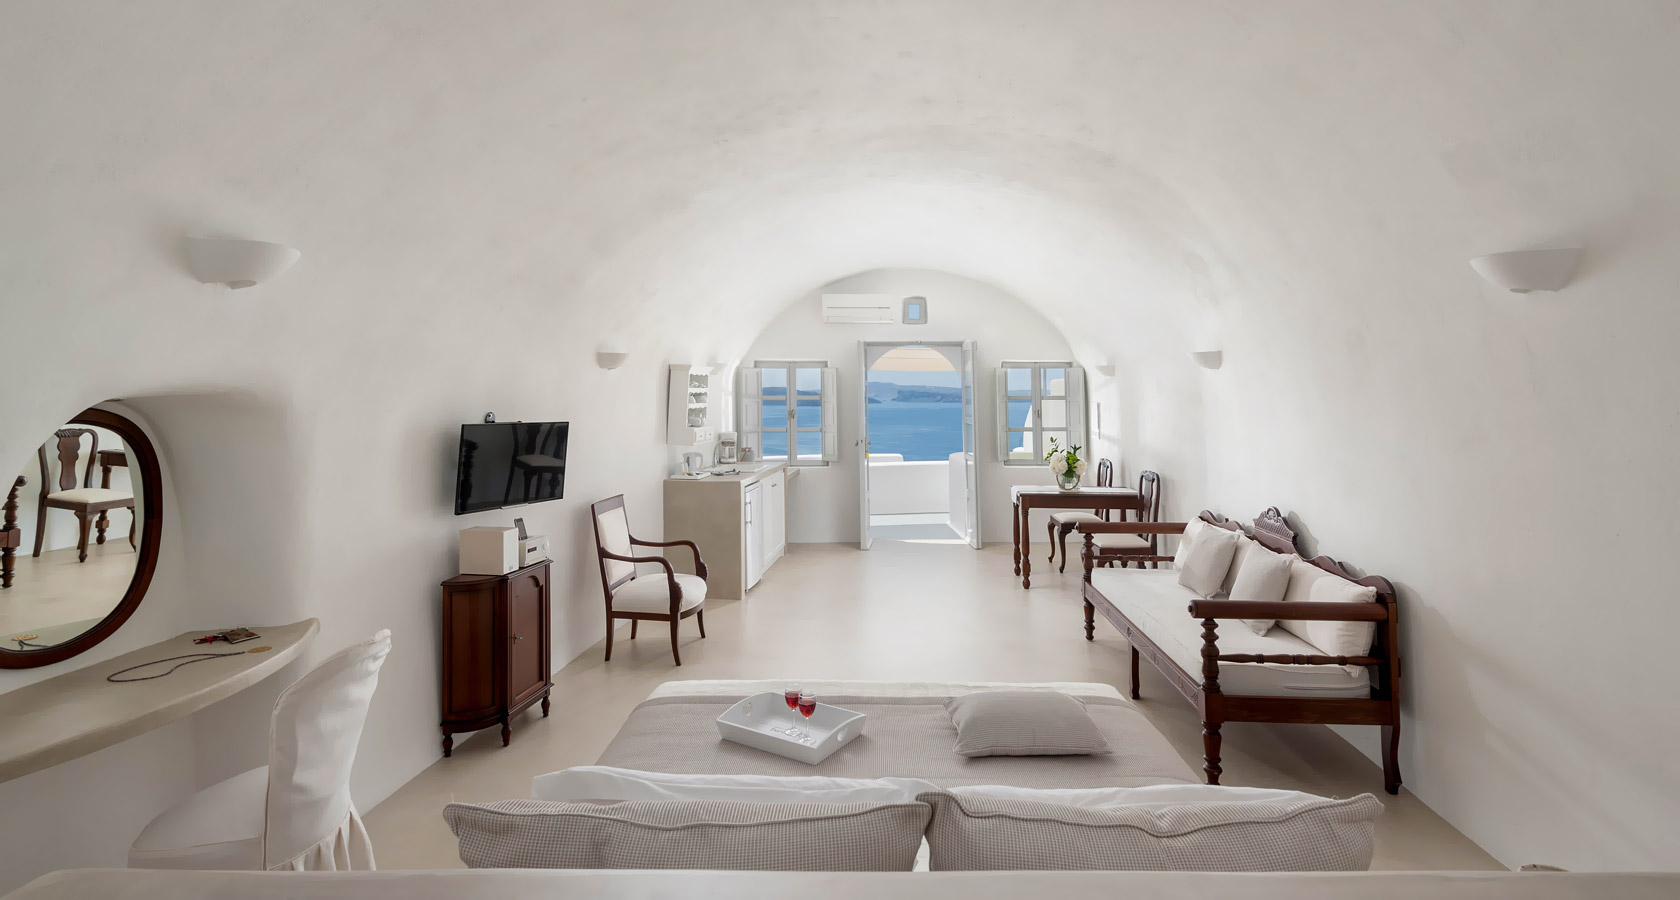 Cave suite with caldera and sea view in Santorini